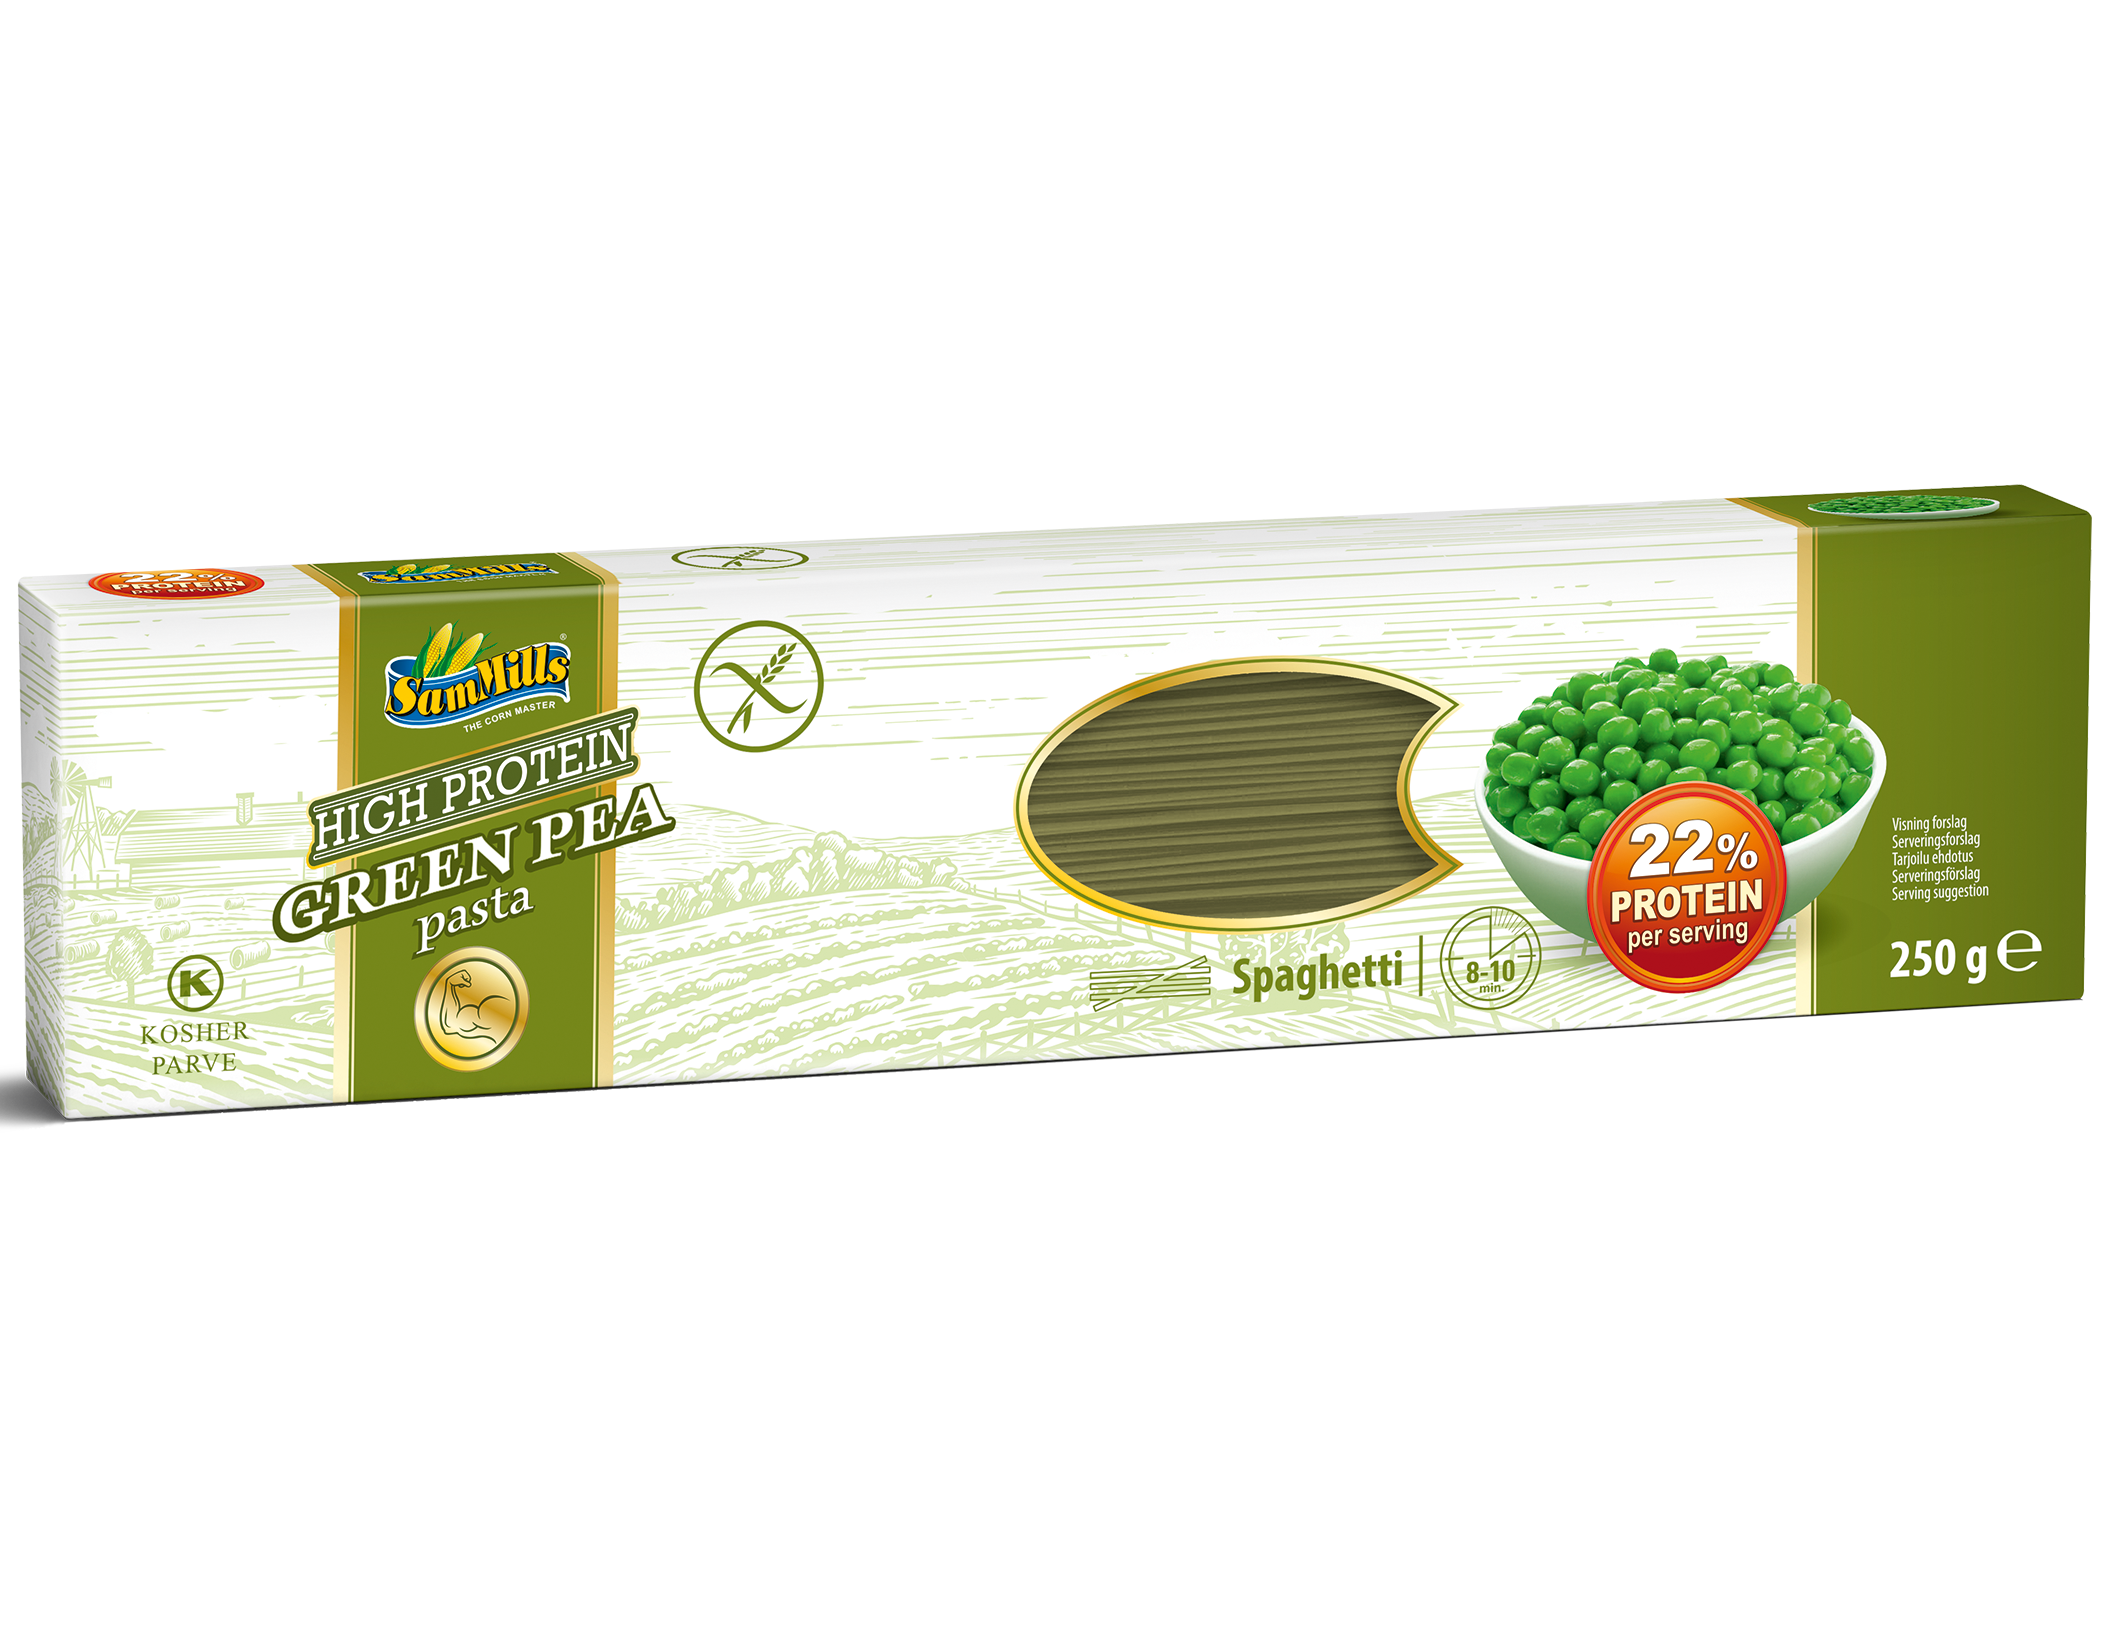 3D GreenPea Spaghetti.Scan1 1 Products Line